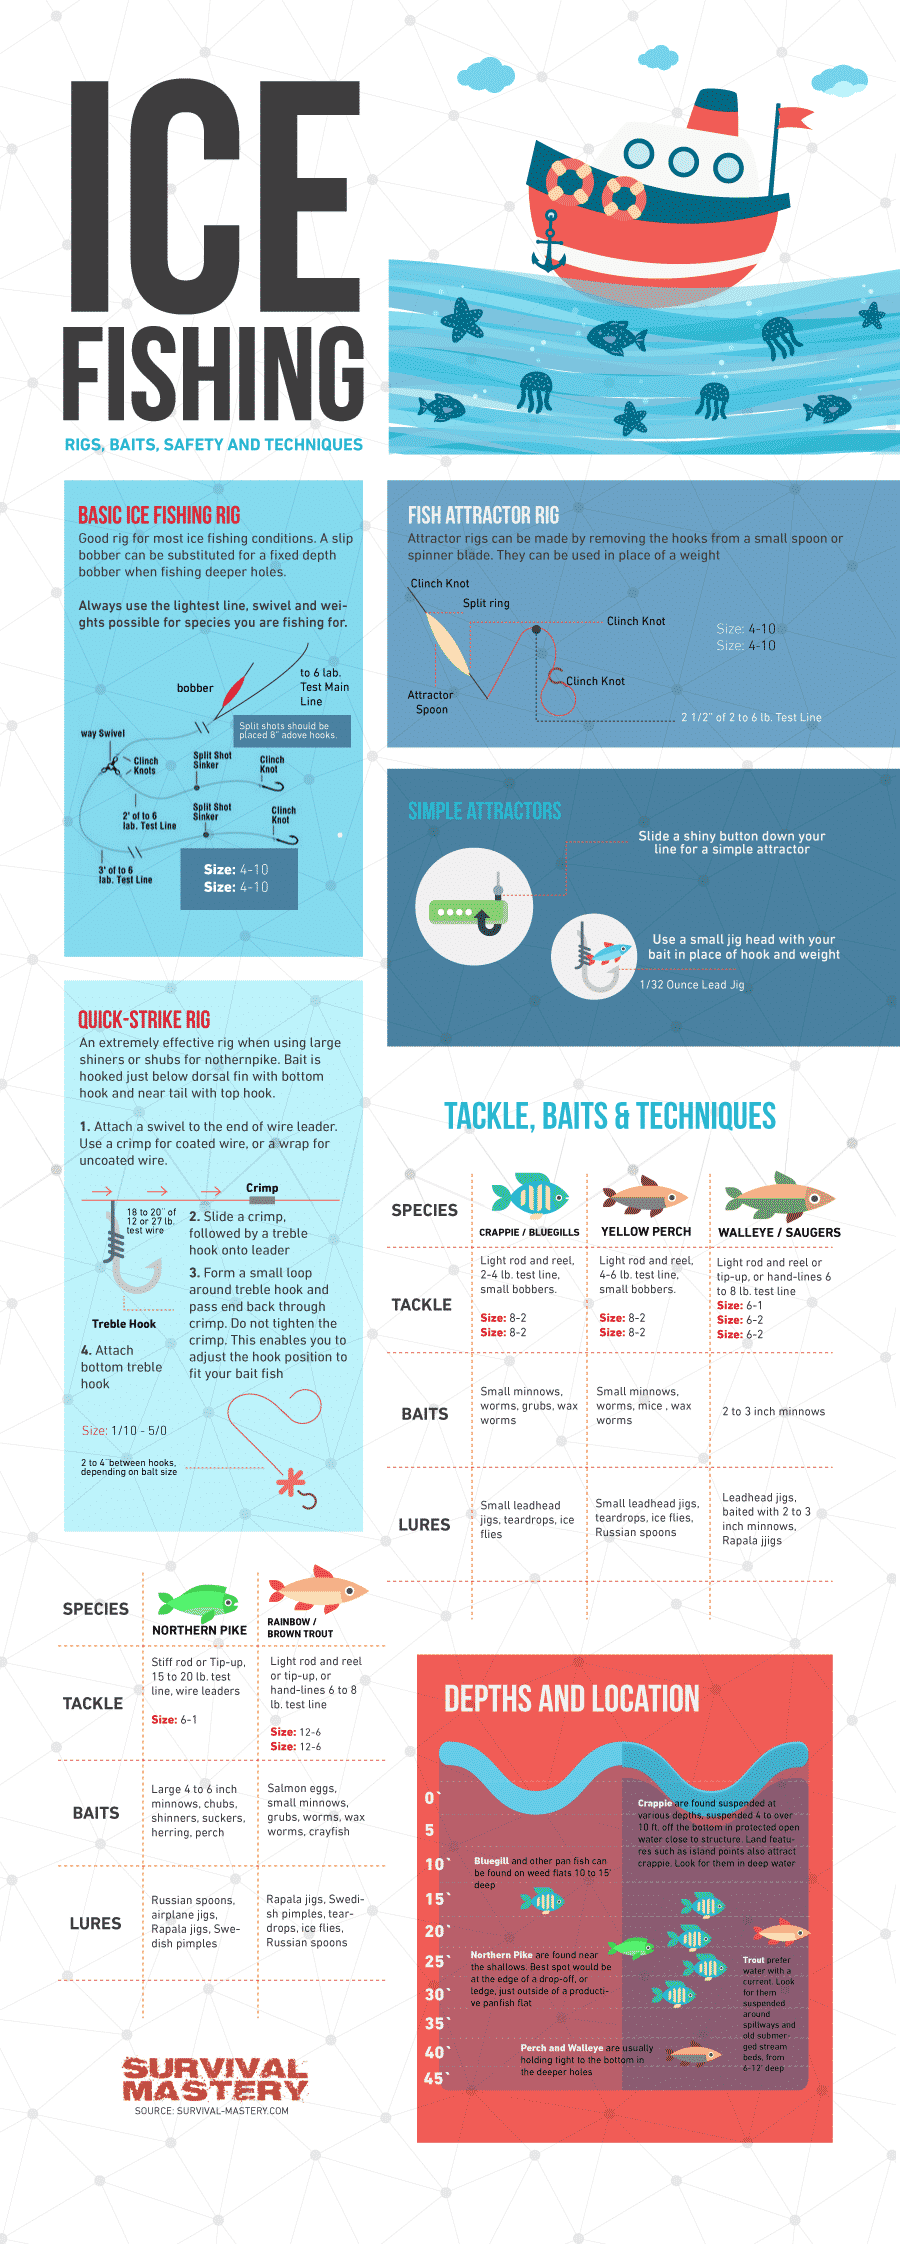 Ice Fishing Tips infographic